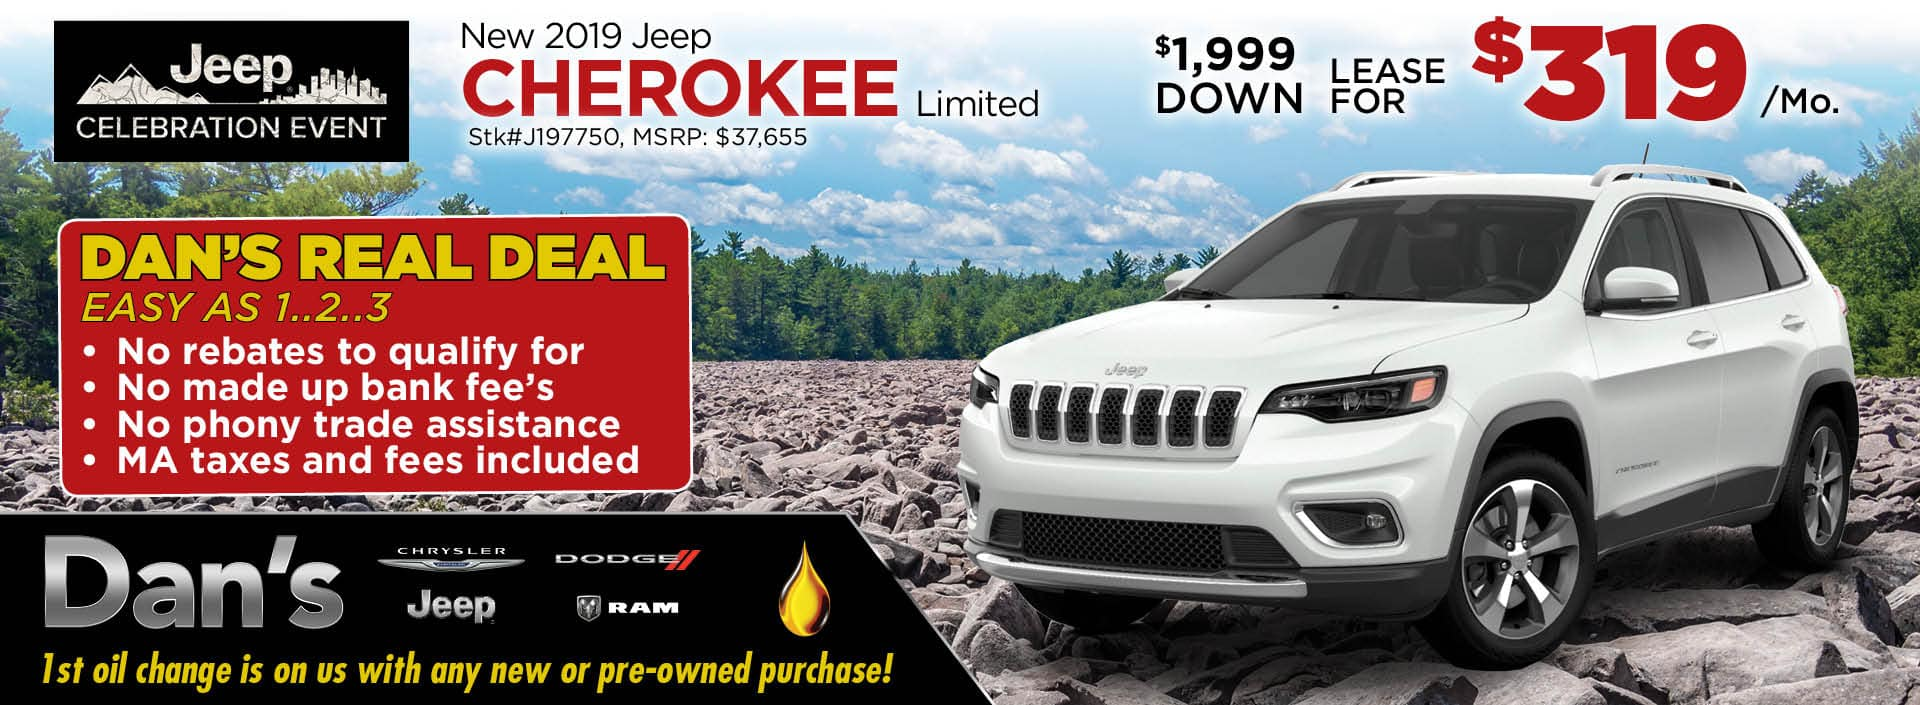 2019 Jeep Cherokee Limited_3